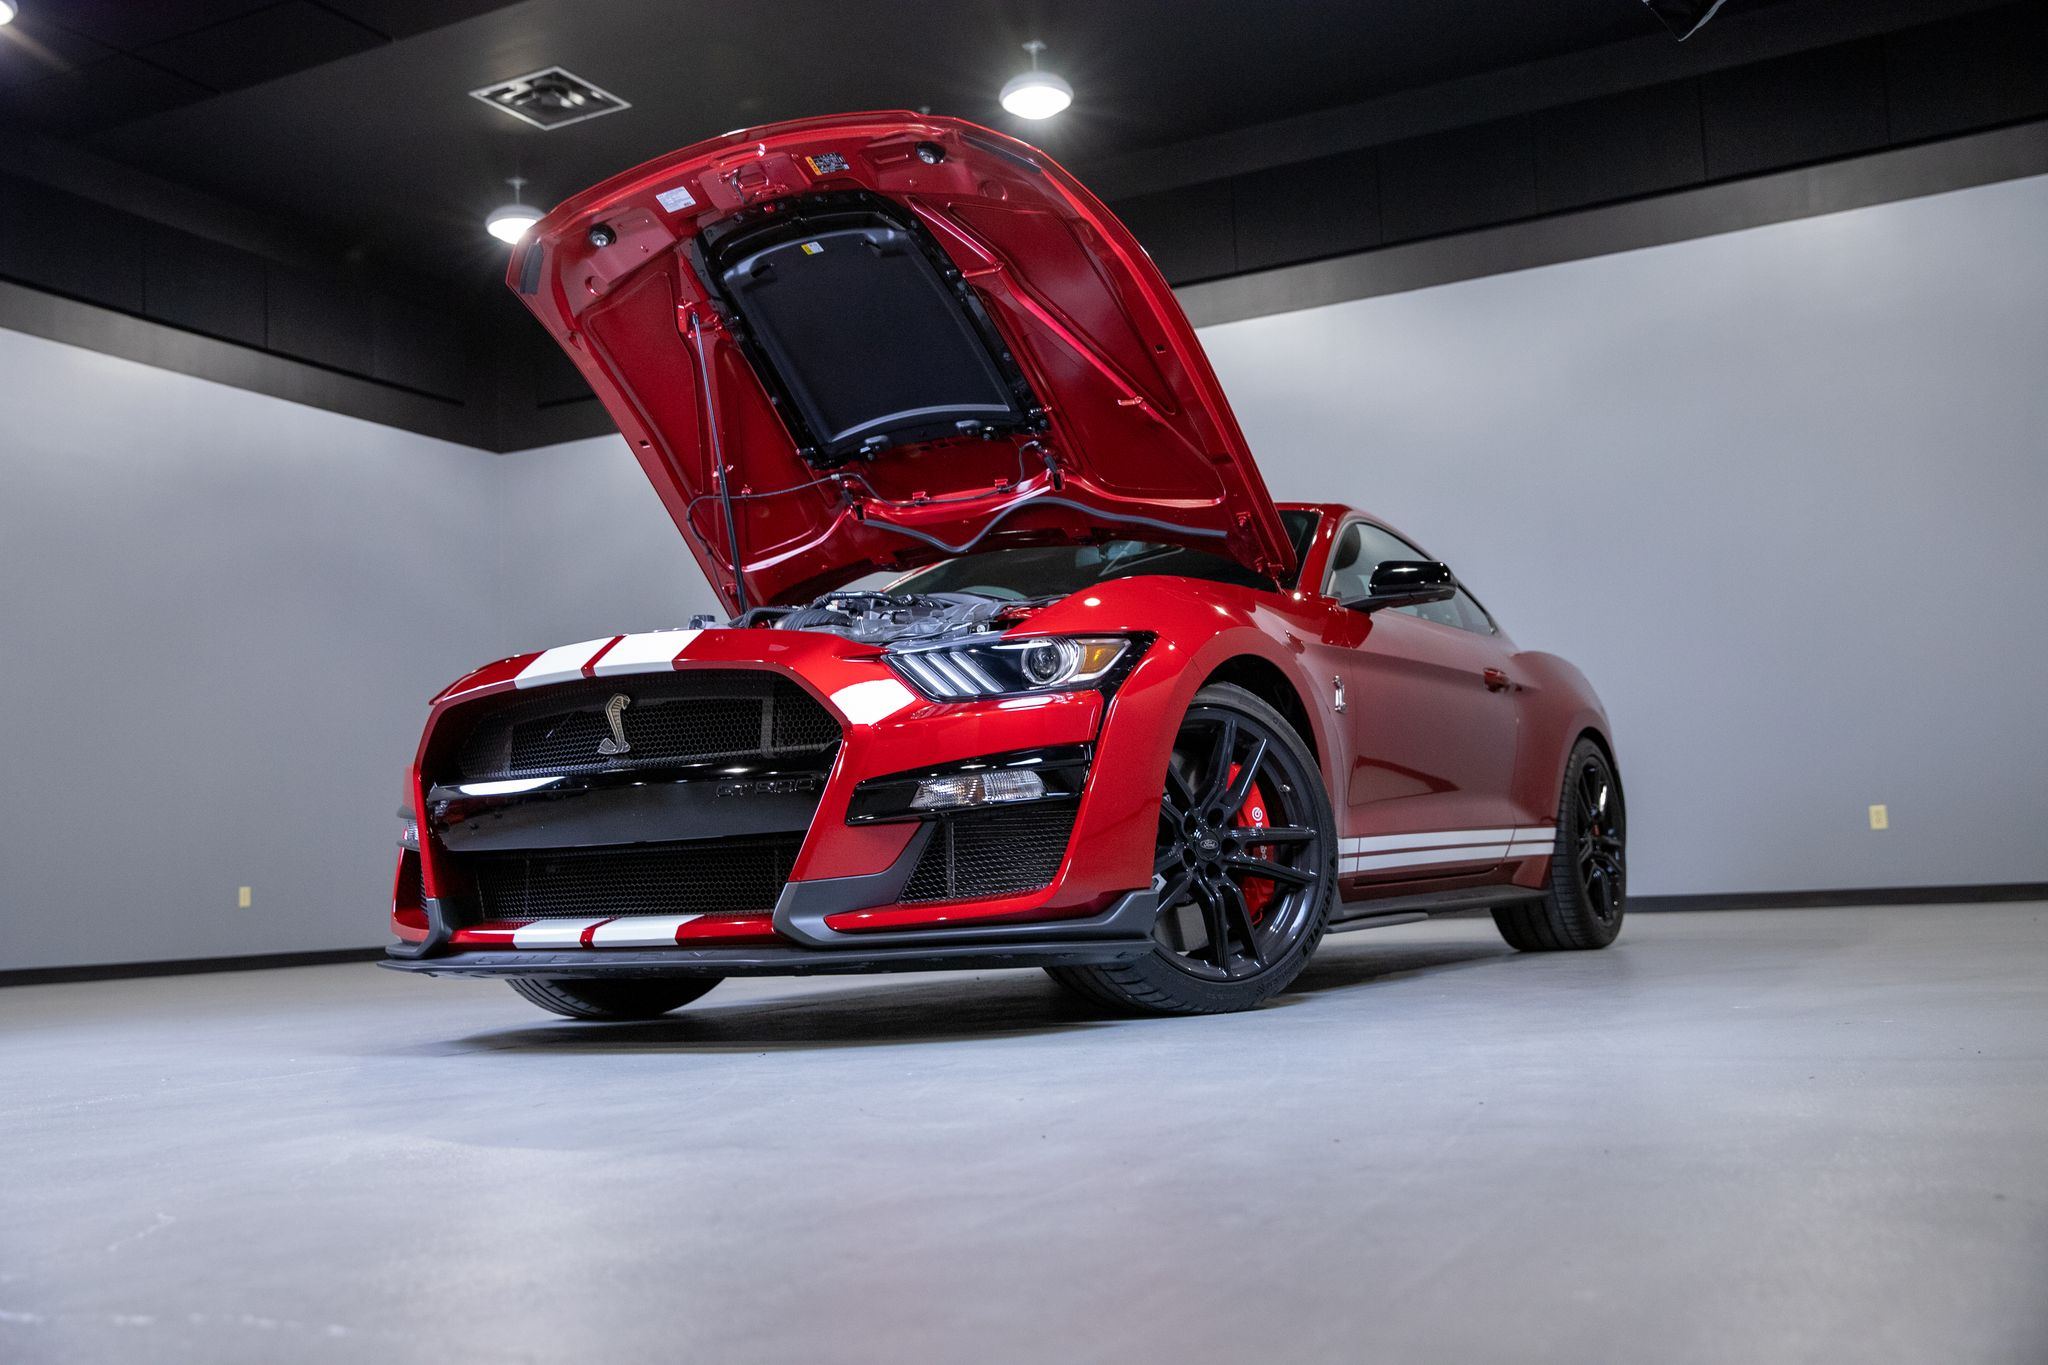 Everything You Need To Know About The 2020 Mustang GT500 - Everything You Need To Know About The 2020 Mustang GT500